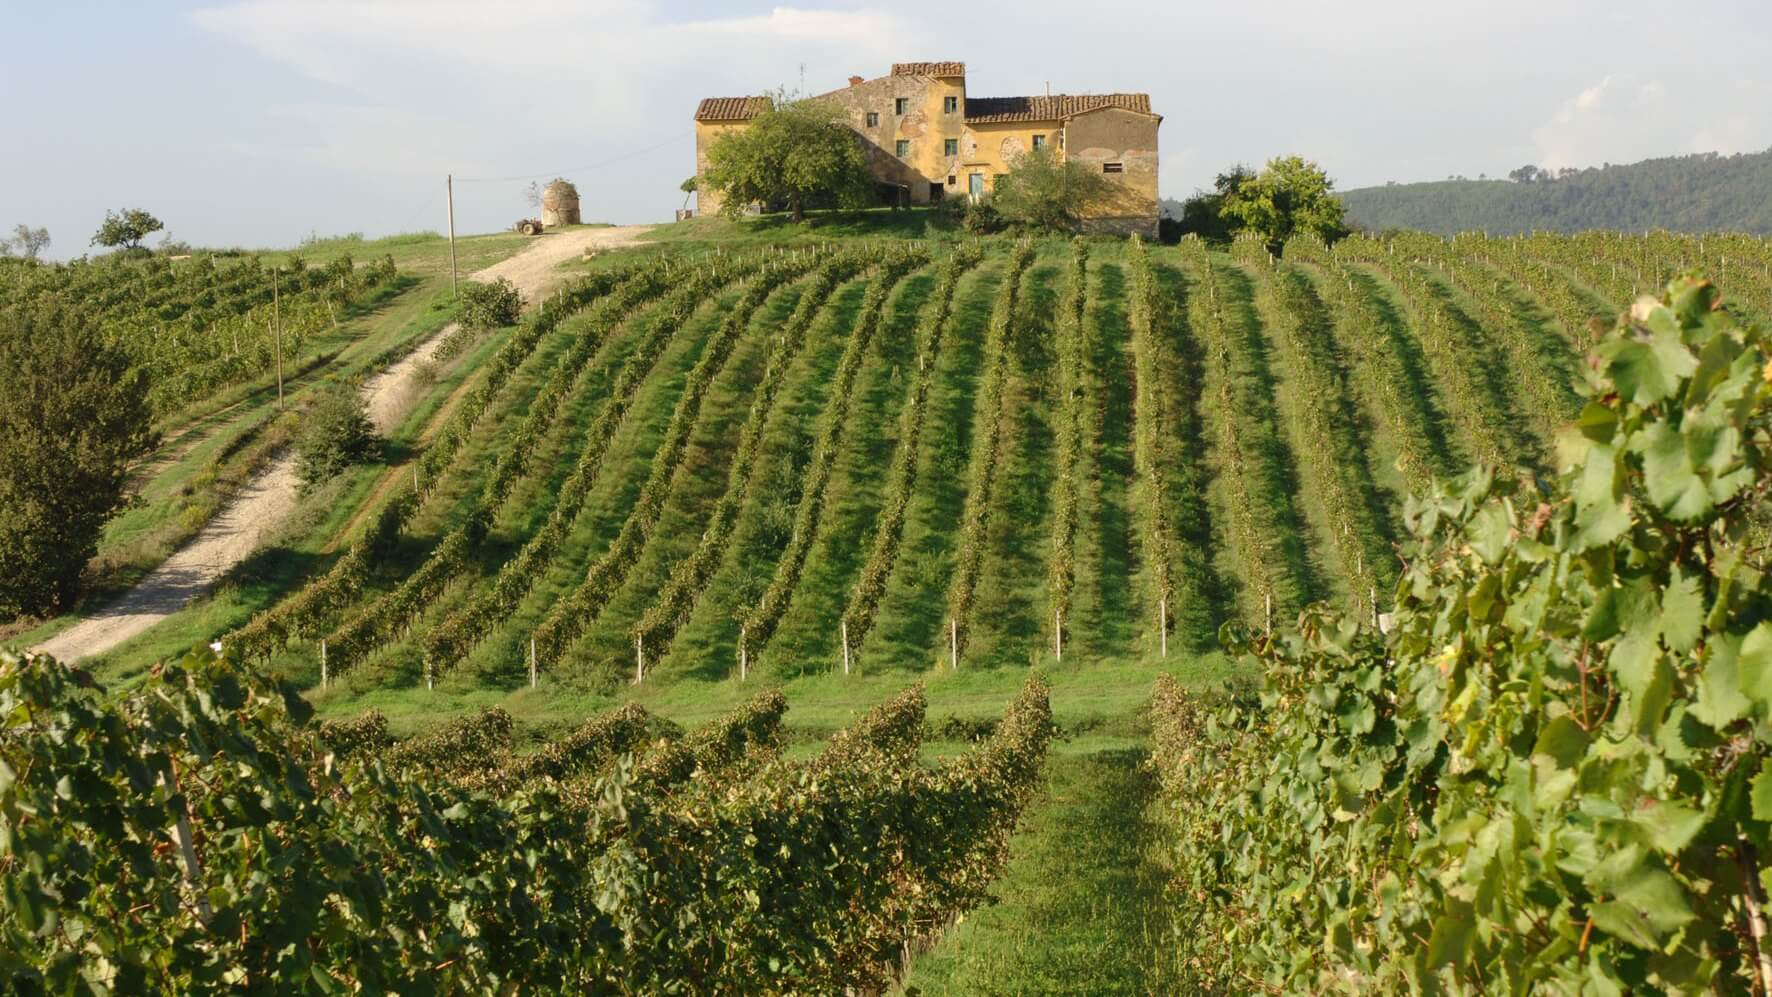 the perfection of tuscan wines due to the best environments of tuscany italy Rich selection of tuscan wines from italian négociant best places to visit in tuscany - italy travel so this is perfection vineyards, tuscany, italy photo.